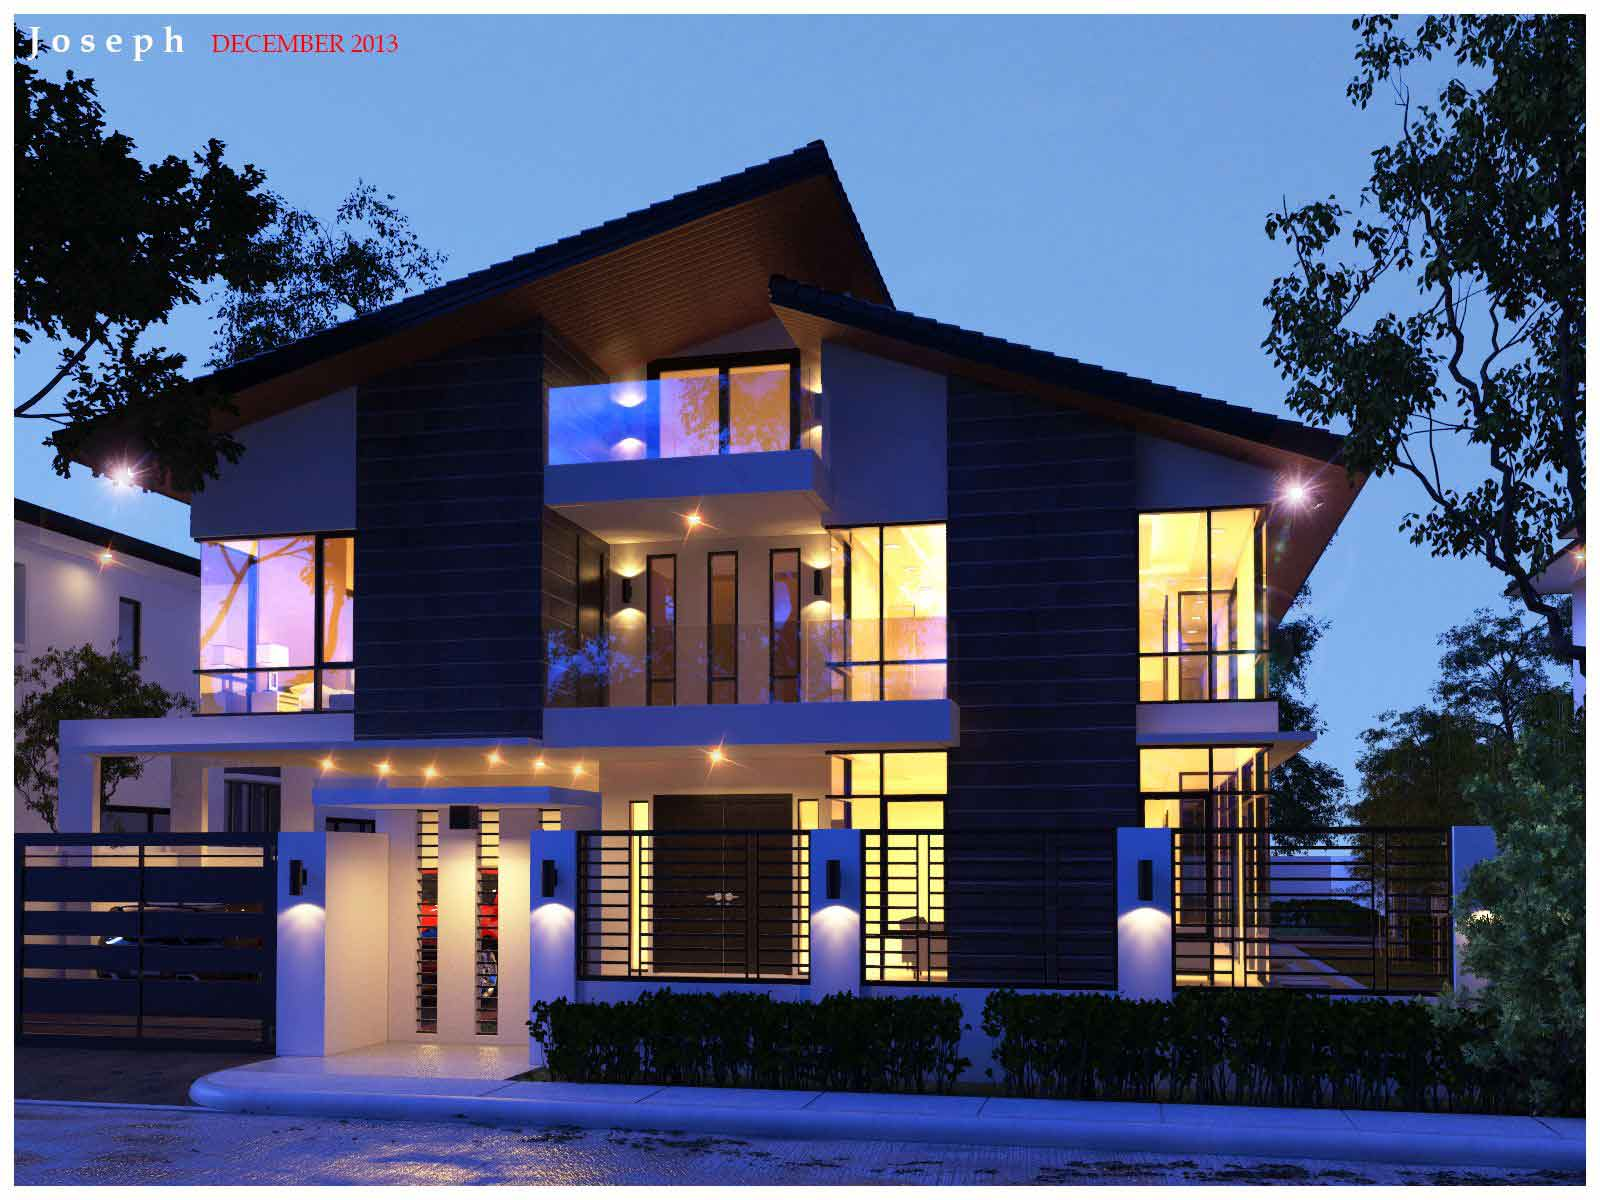 Vray Light Exterior Rendering 3d Architectural Rendering Services House Exterior Rendering Vray